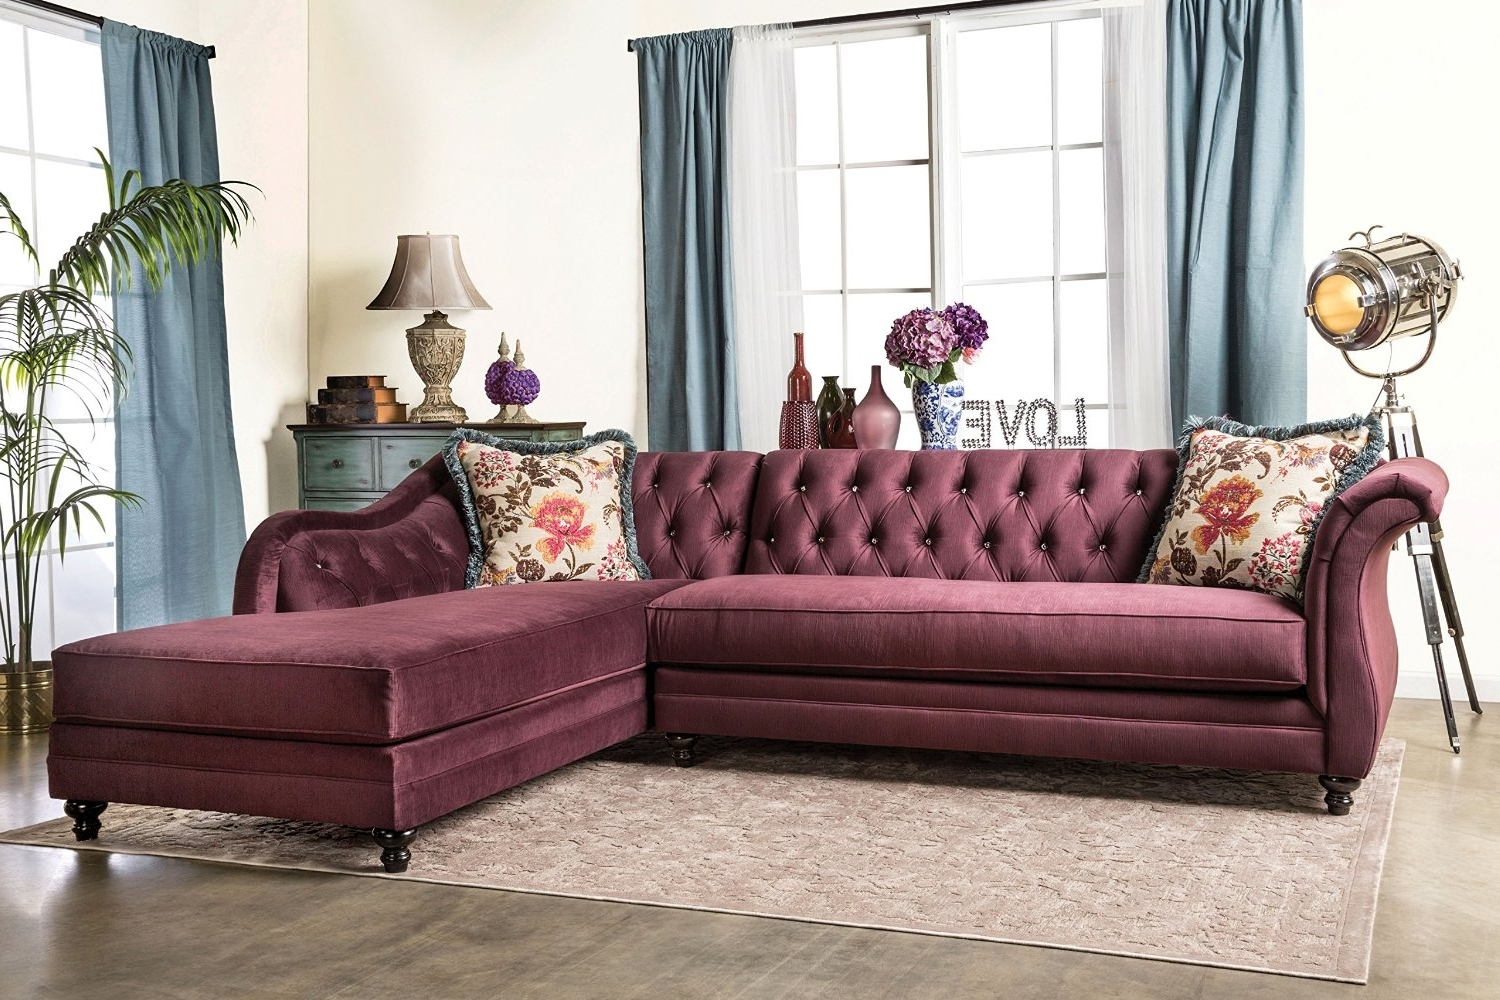 Most Up To Date Target Sectional Sofas Pertaining To Sofa : Target Tufted Loveseat Tufted Leather Furniture White (View 11 of 15)